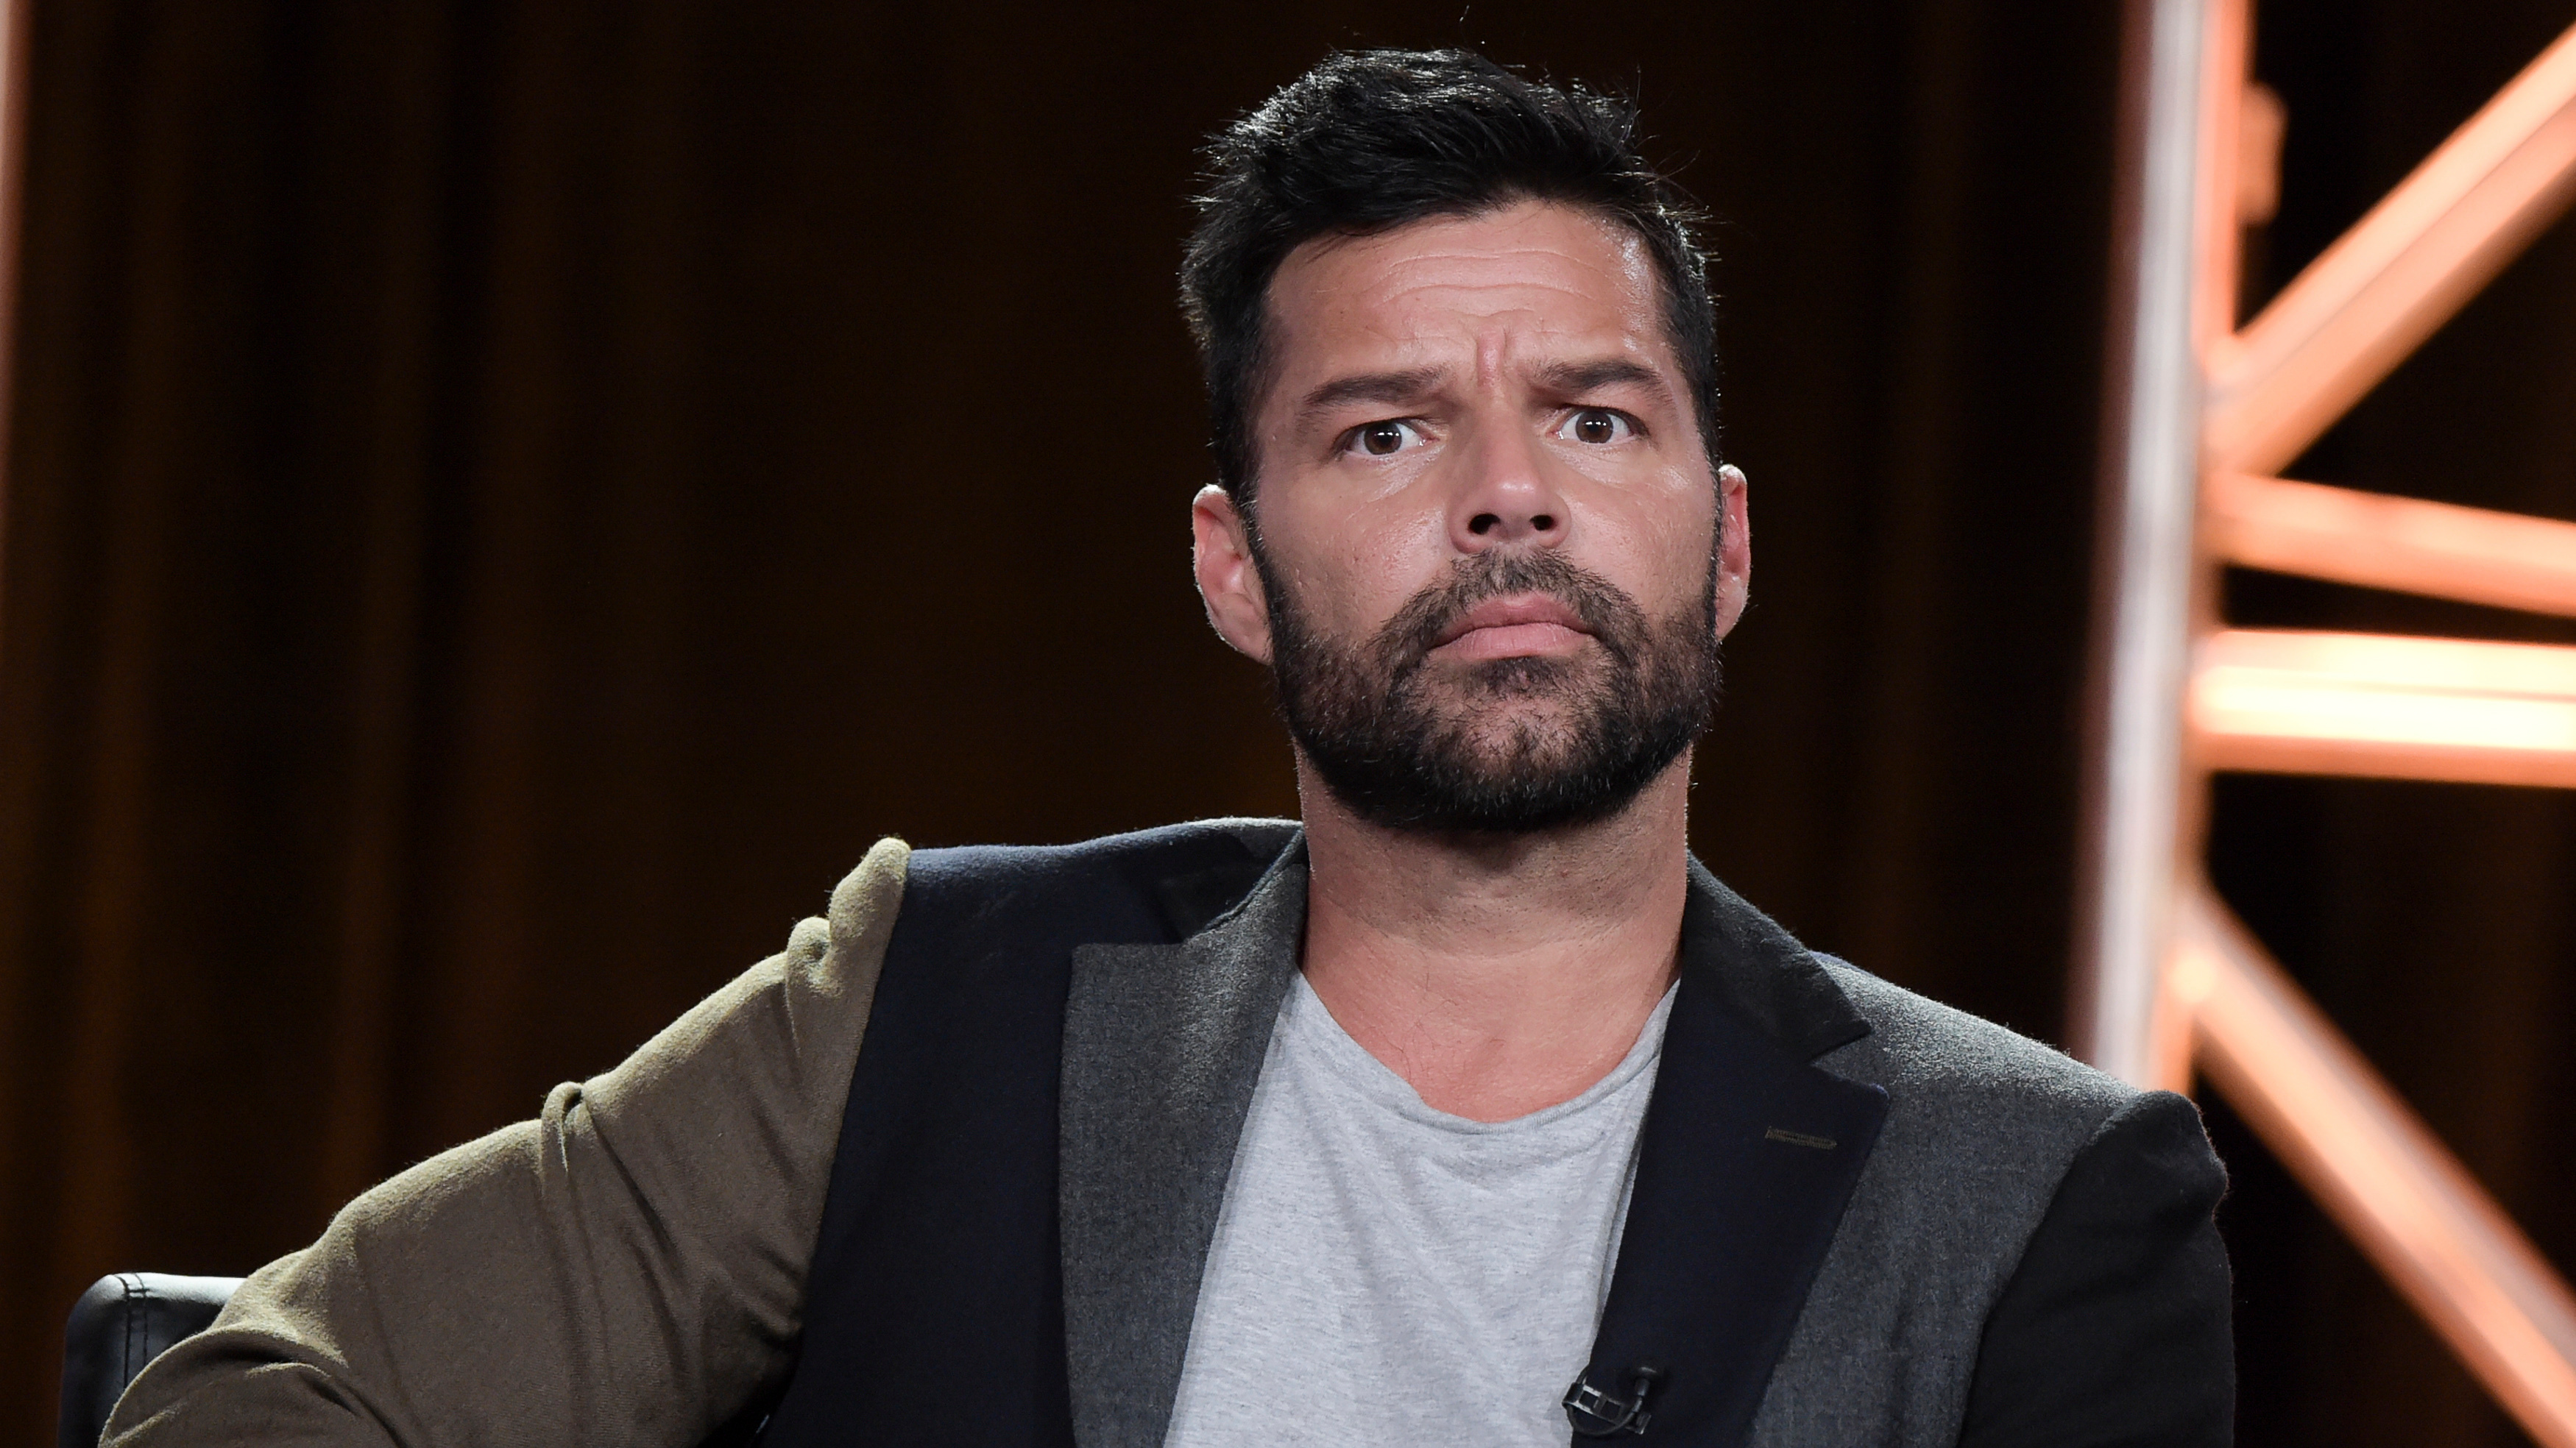 People Think Young Ricky Martin Photo Looks Like Kendall Jenner